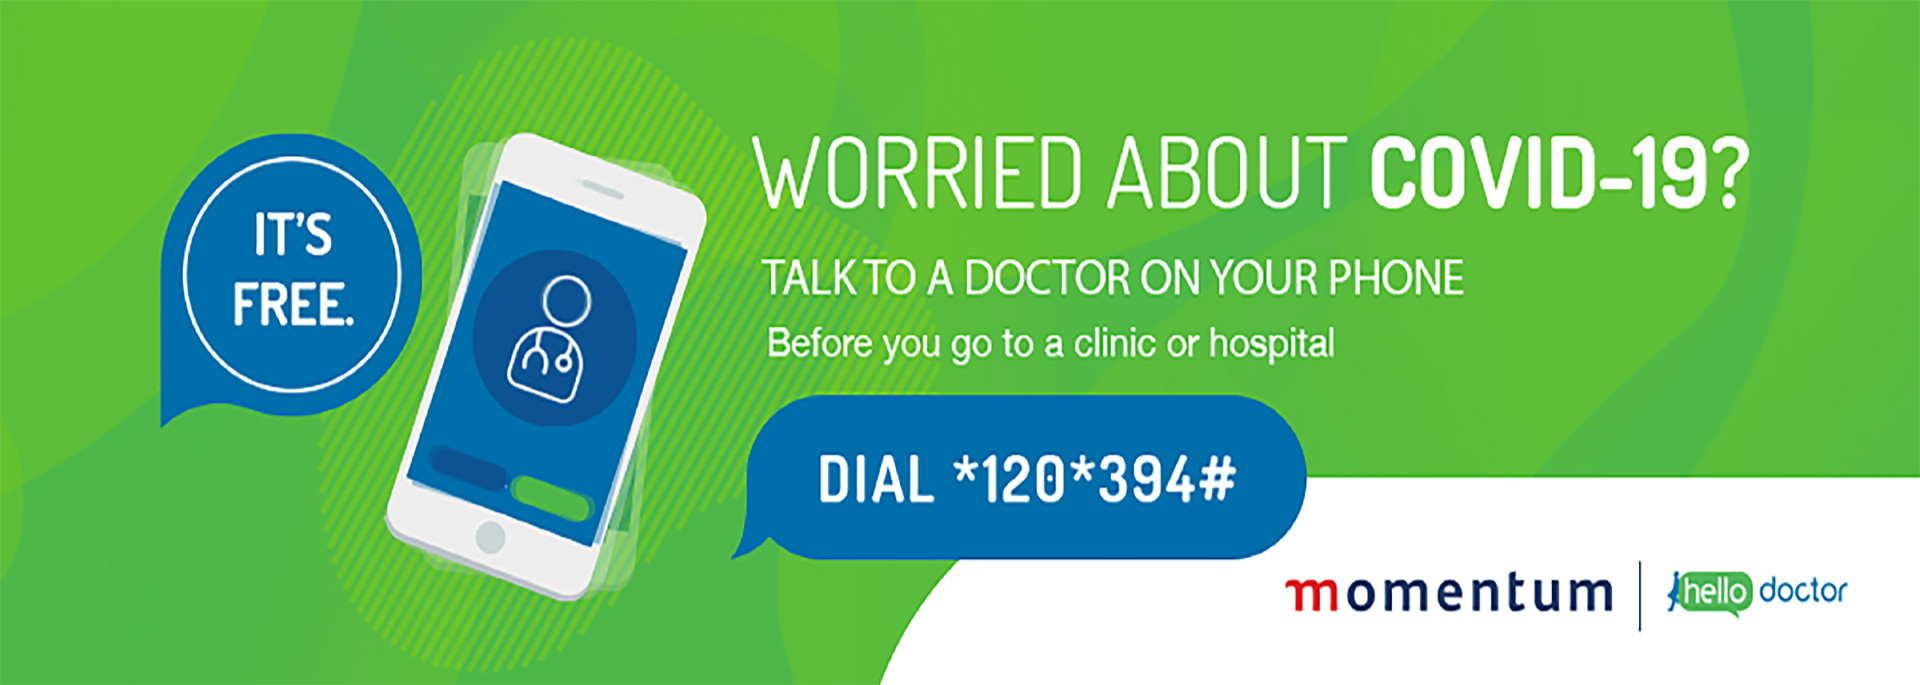 Worried about COVID-19? Talk to a doctor on your phone before you go to a clinic or hospital.